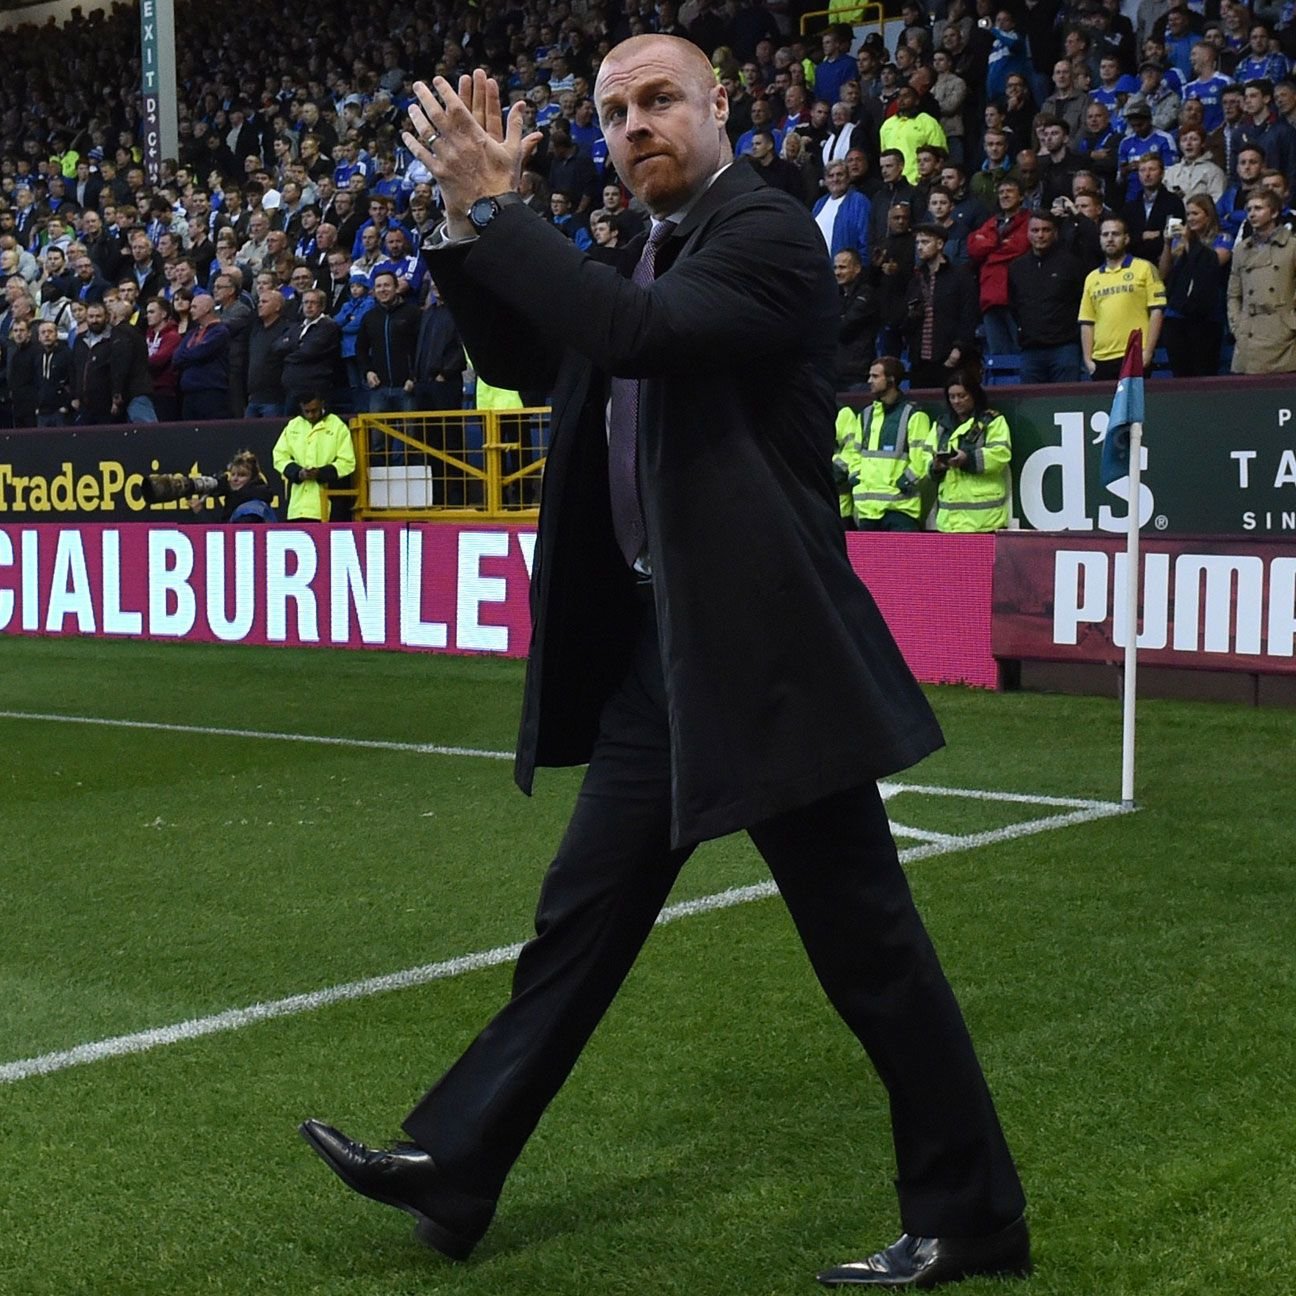 The spotlight will be on Sean Dyche's Burnley to see if they can extend their unbeaten run.